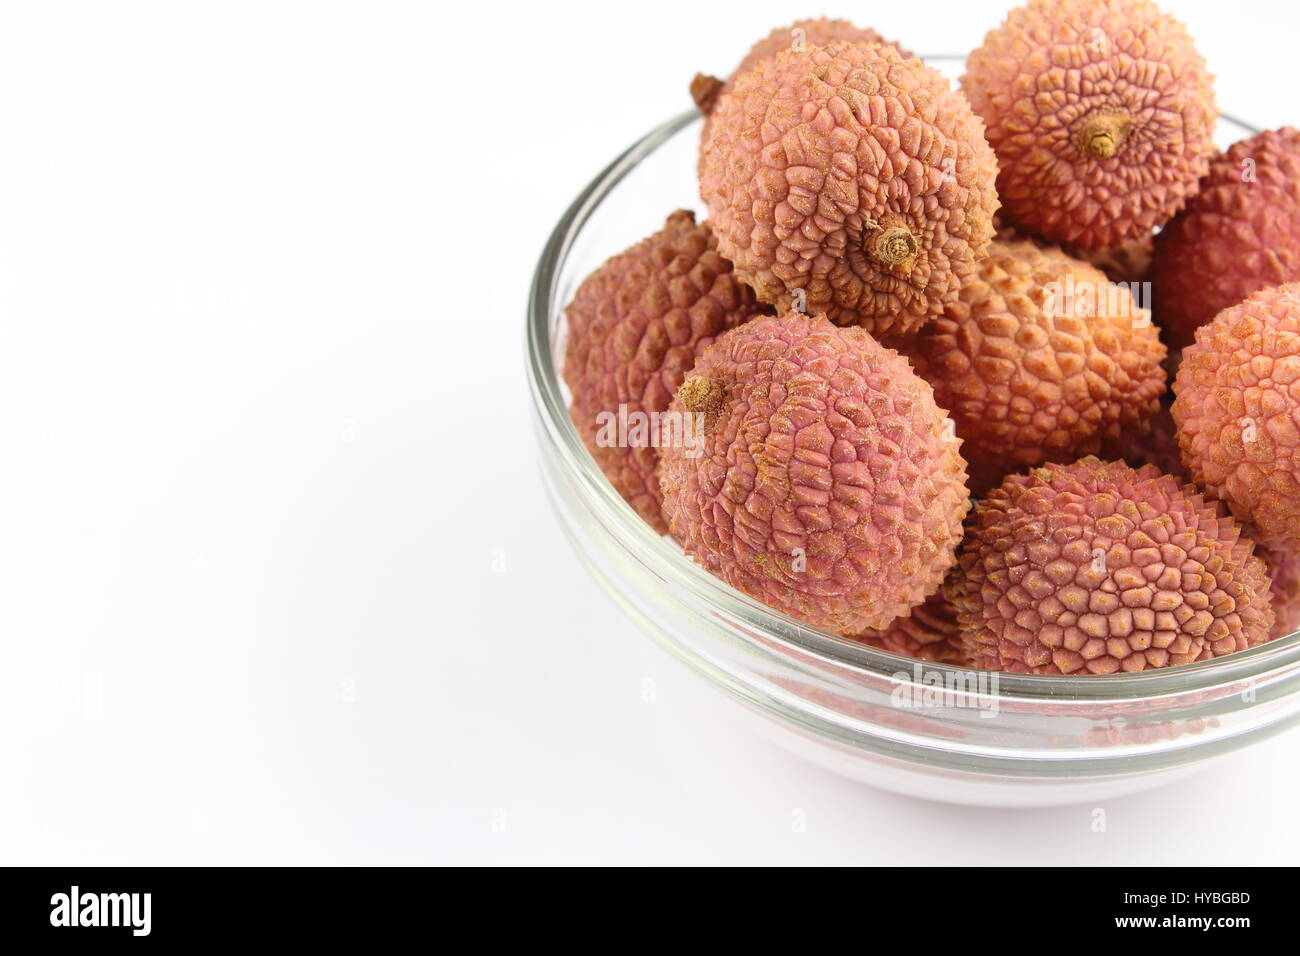 composition of lychee fruits in a small glass bowl - Stock Image